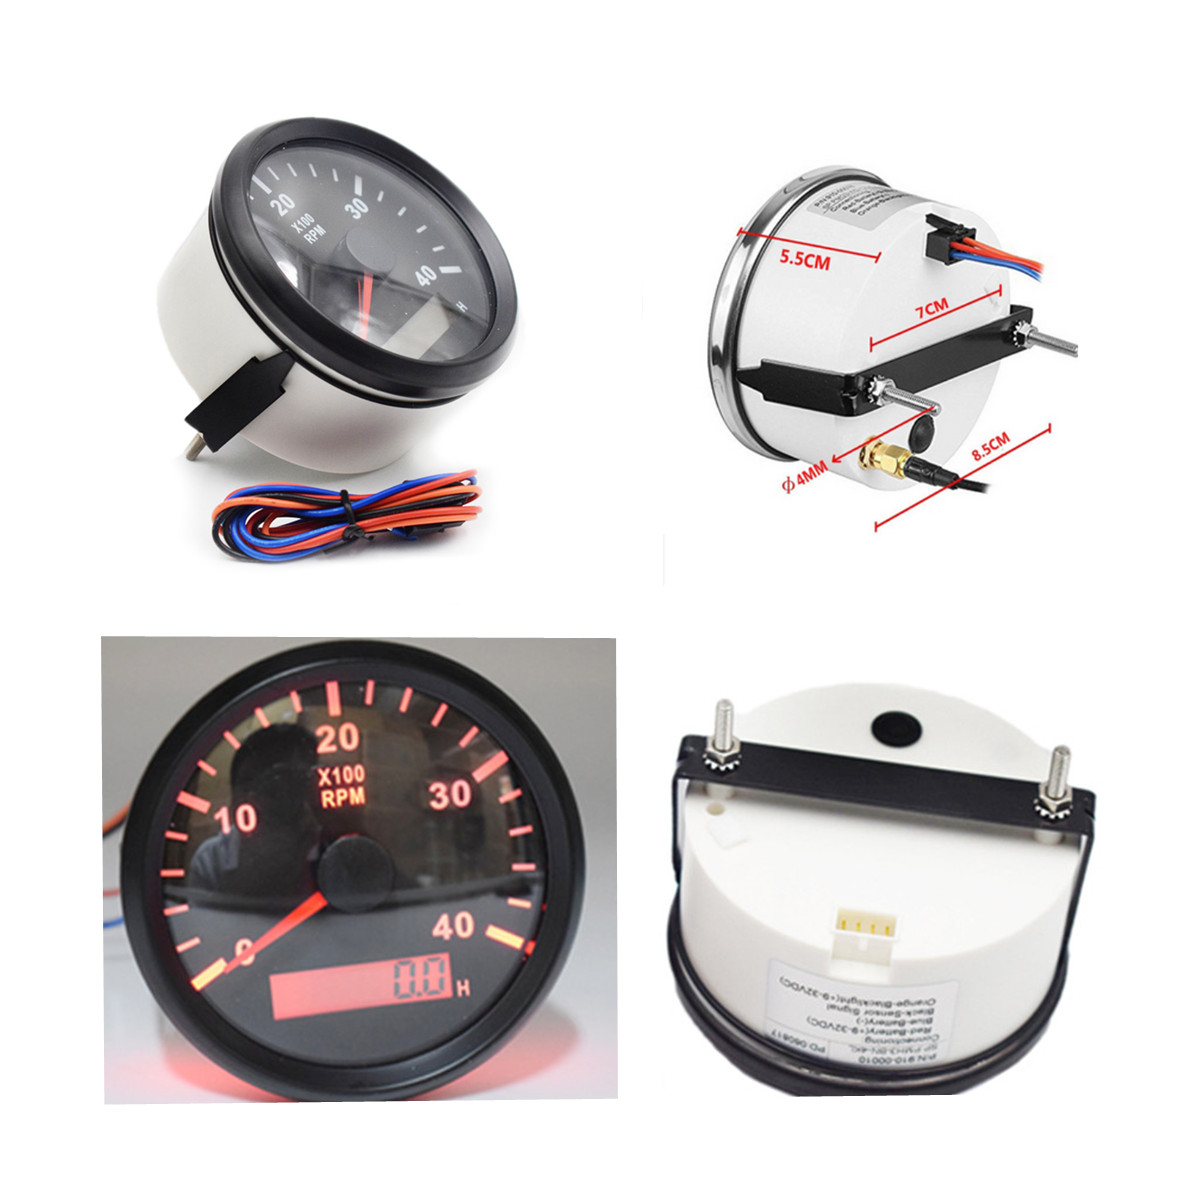 hight resolution of details about car marine tachometer 4000 rpm diameter 85mm 9 32v dc lcd tacho hour meter